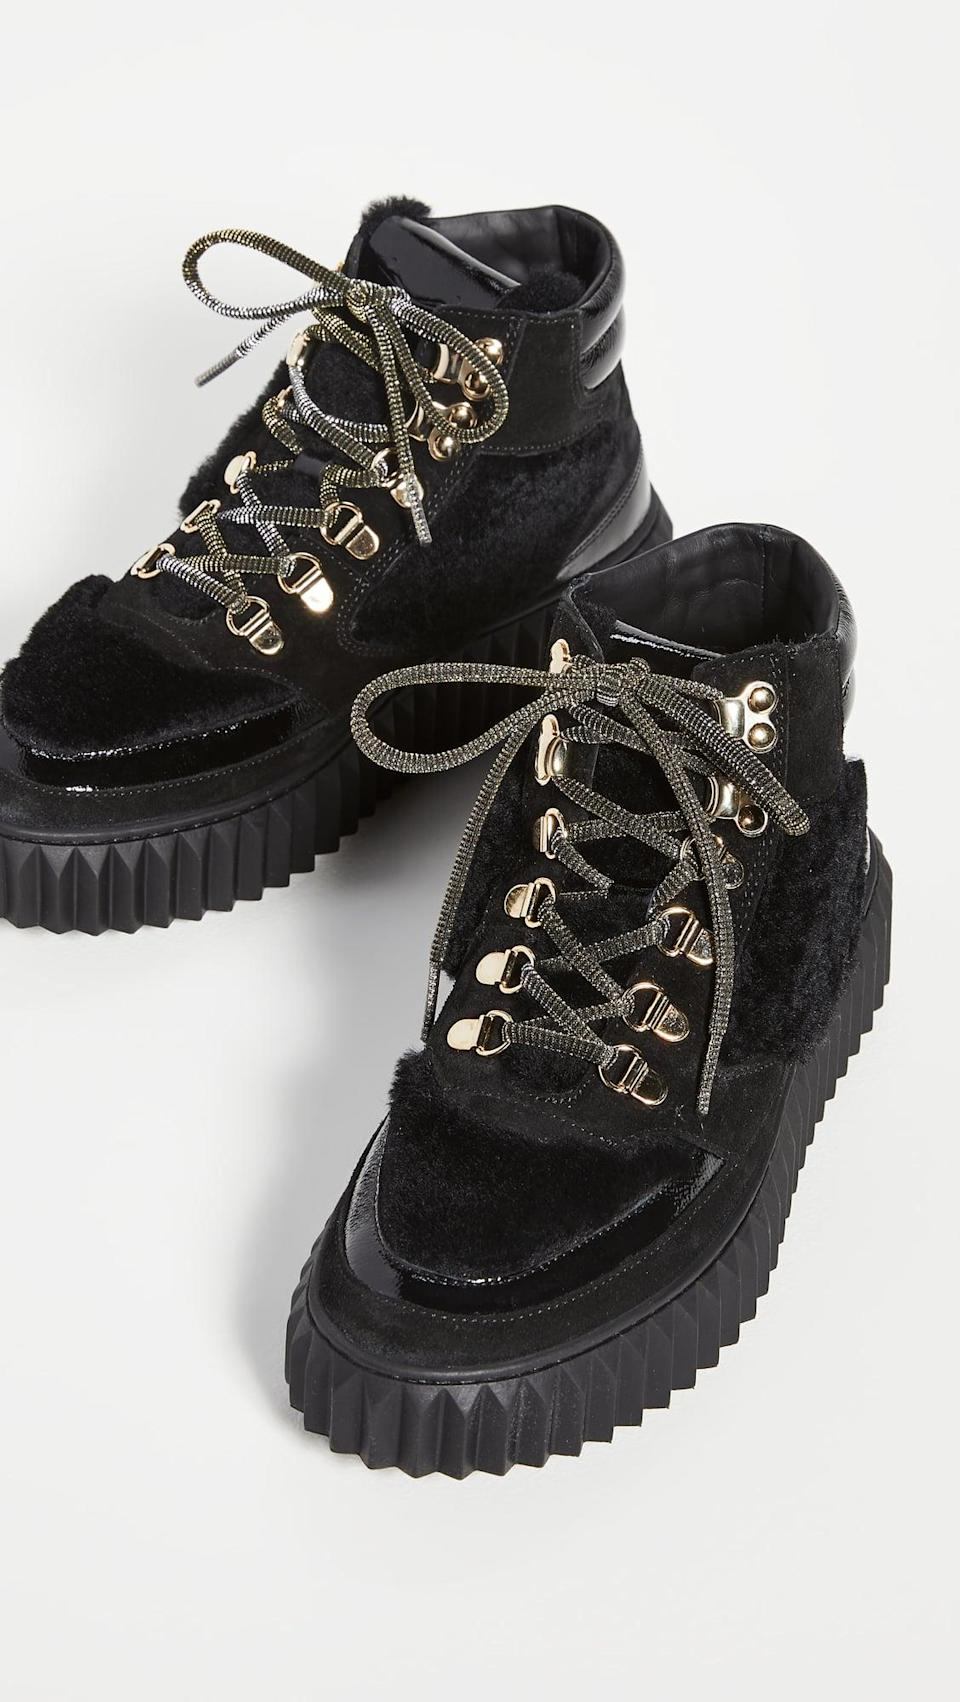 <p>We're all about the cozy vibes right now. These <span>Voile Blanche Eva Shearling Hiker Boots</span> ($298) are definitely the kinds of boots we want to wear.</p>